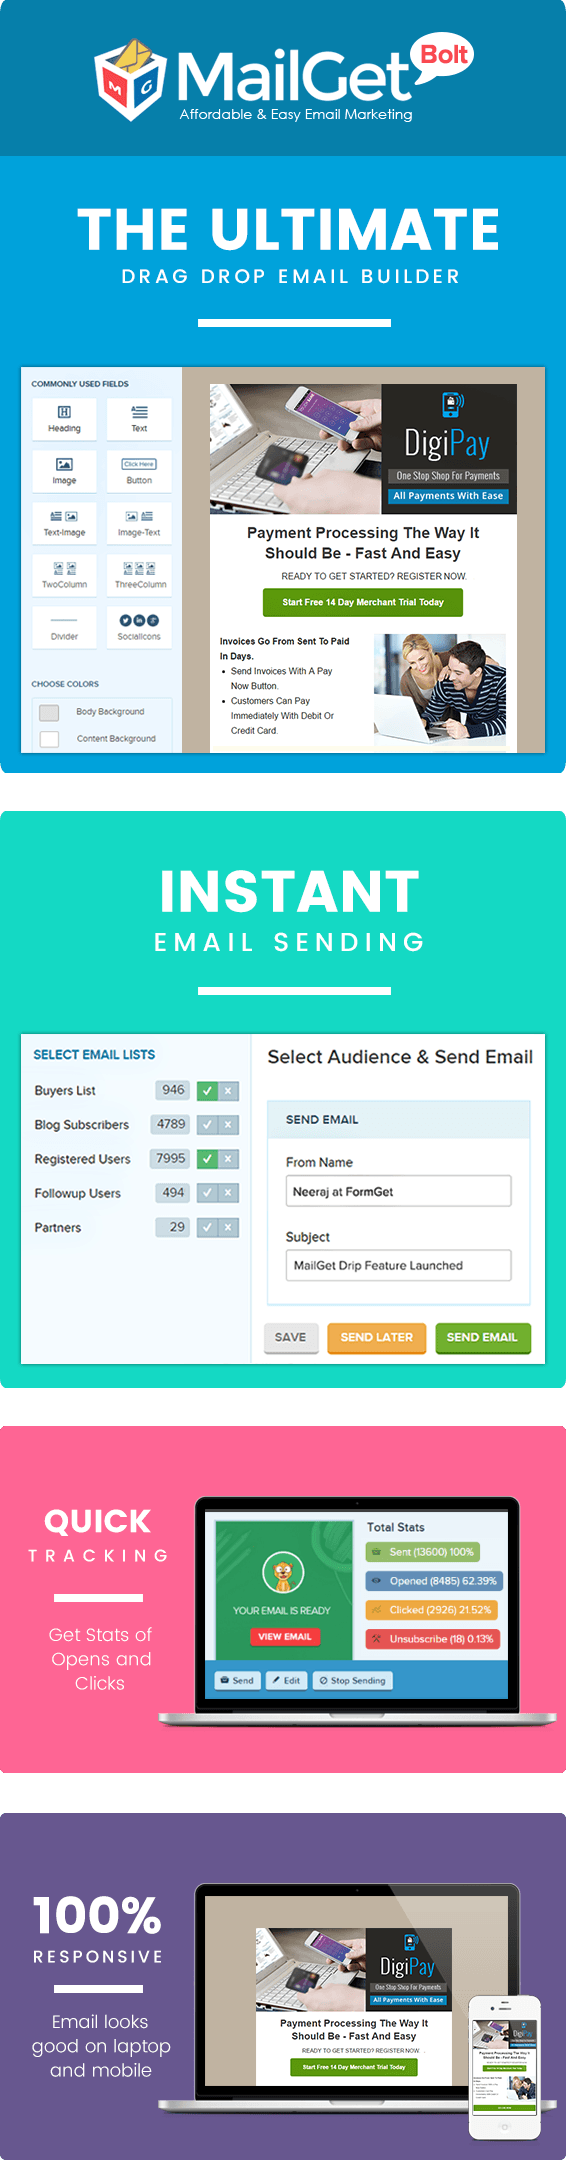 Email Marketing For Online Payment Services Sales Page